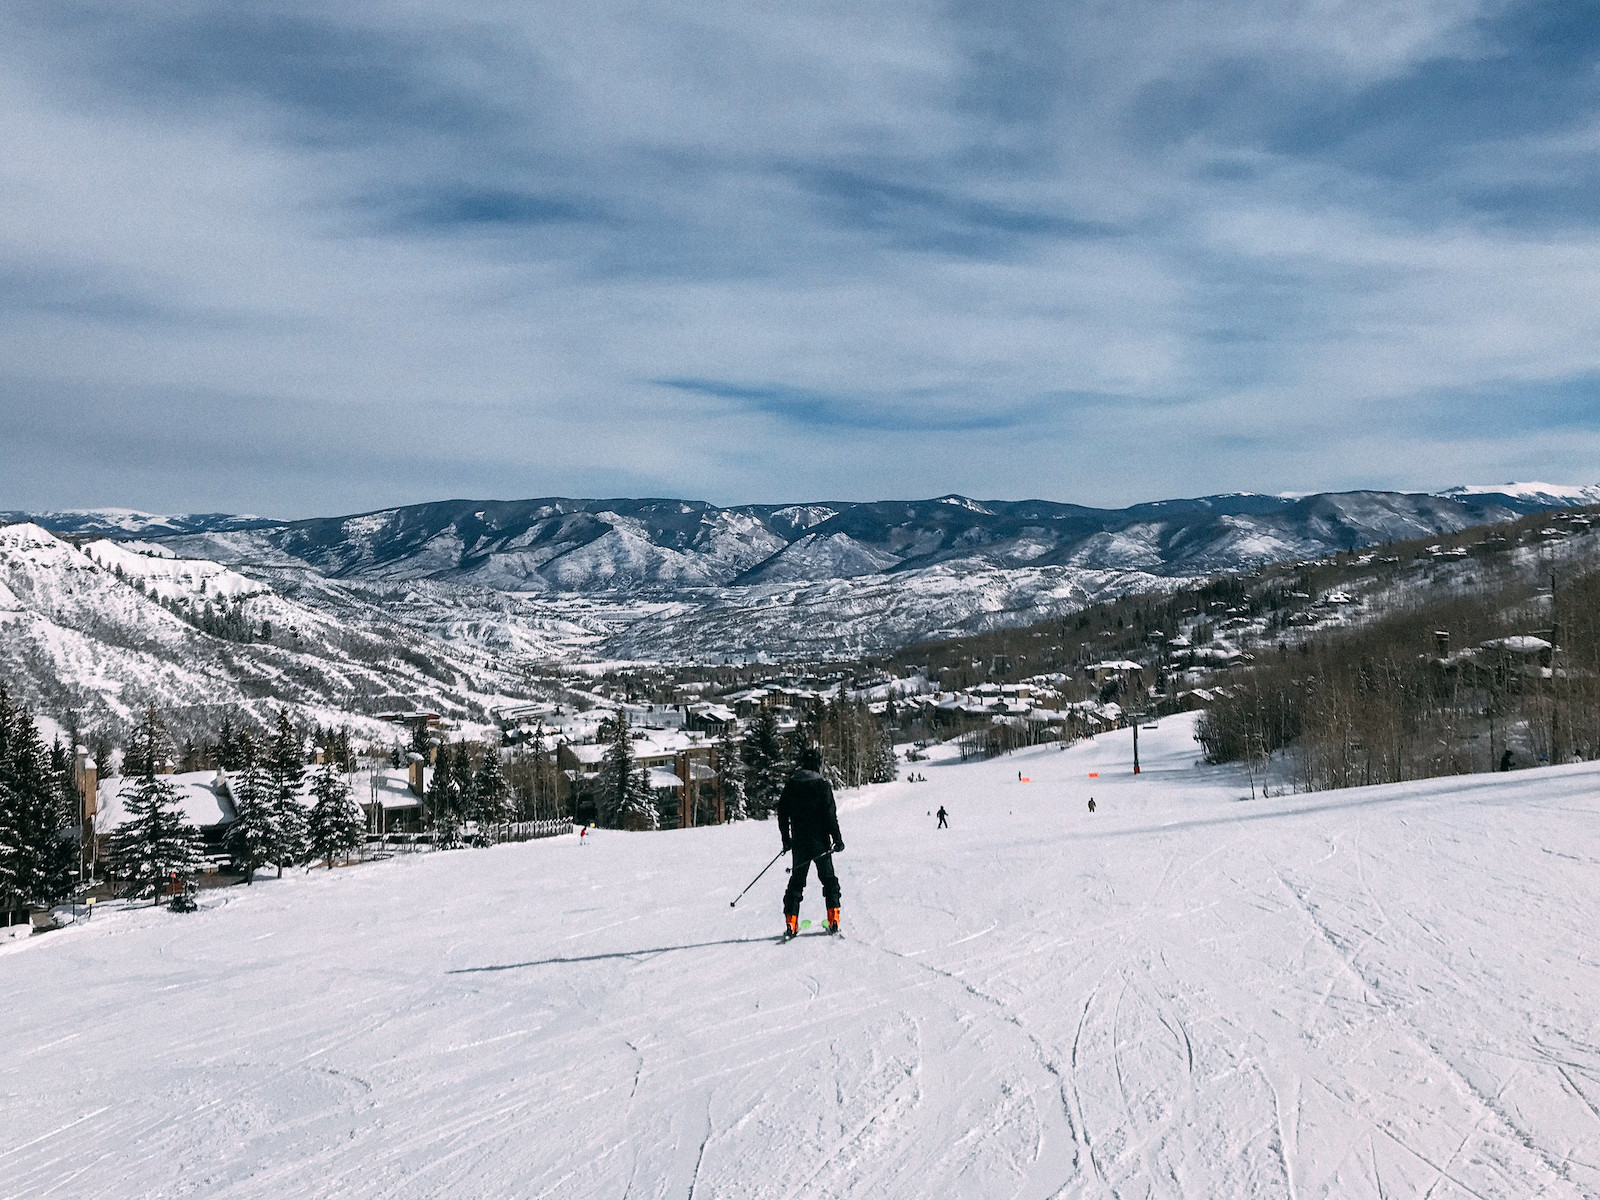 Image of a person skiing at Snowmass in Aspen, Colorado